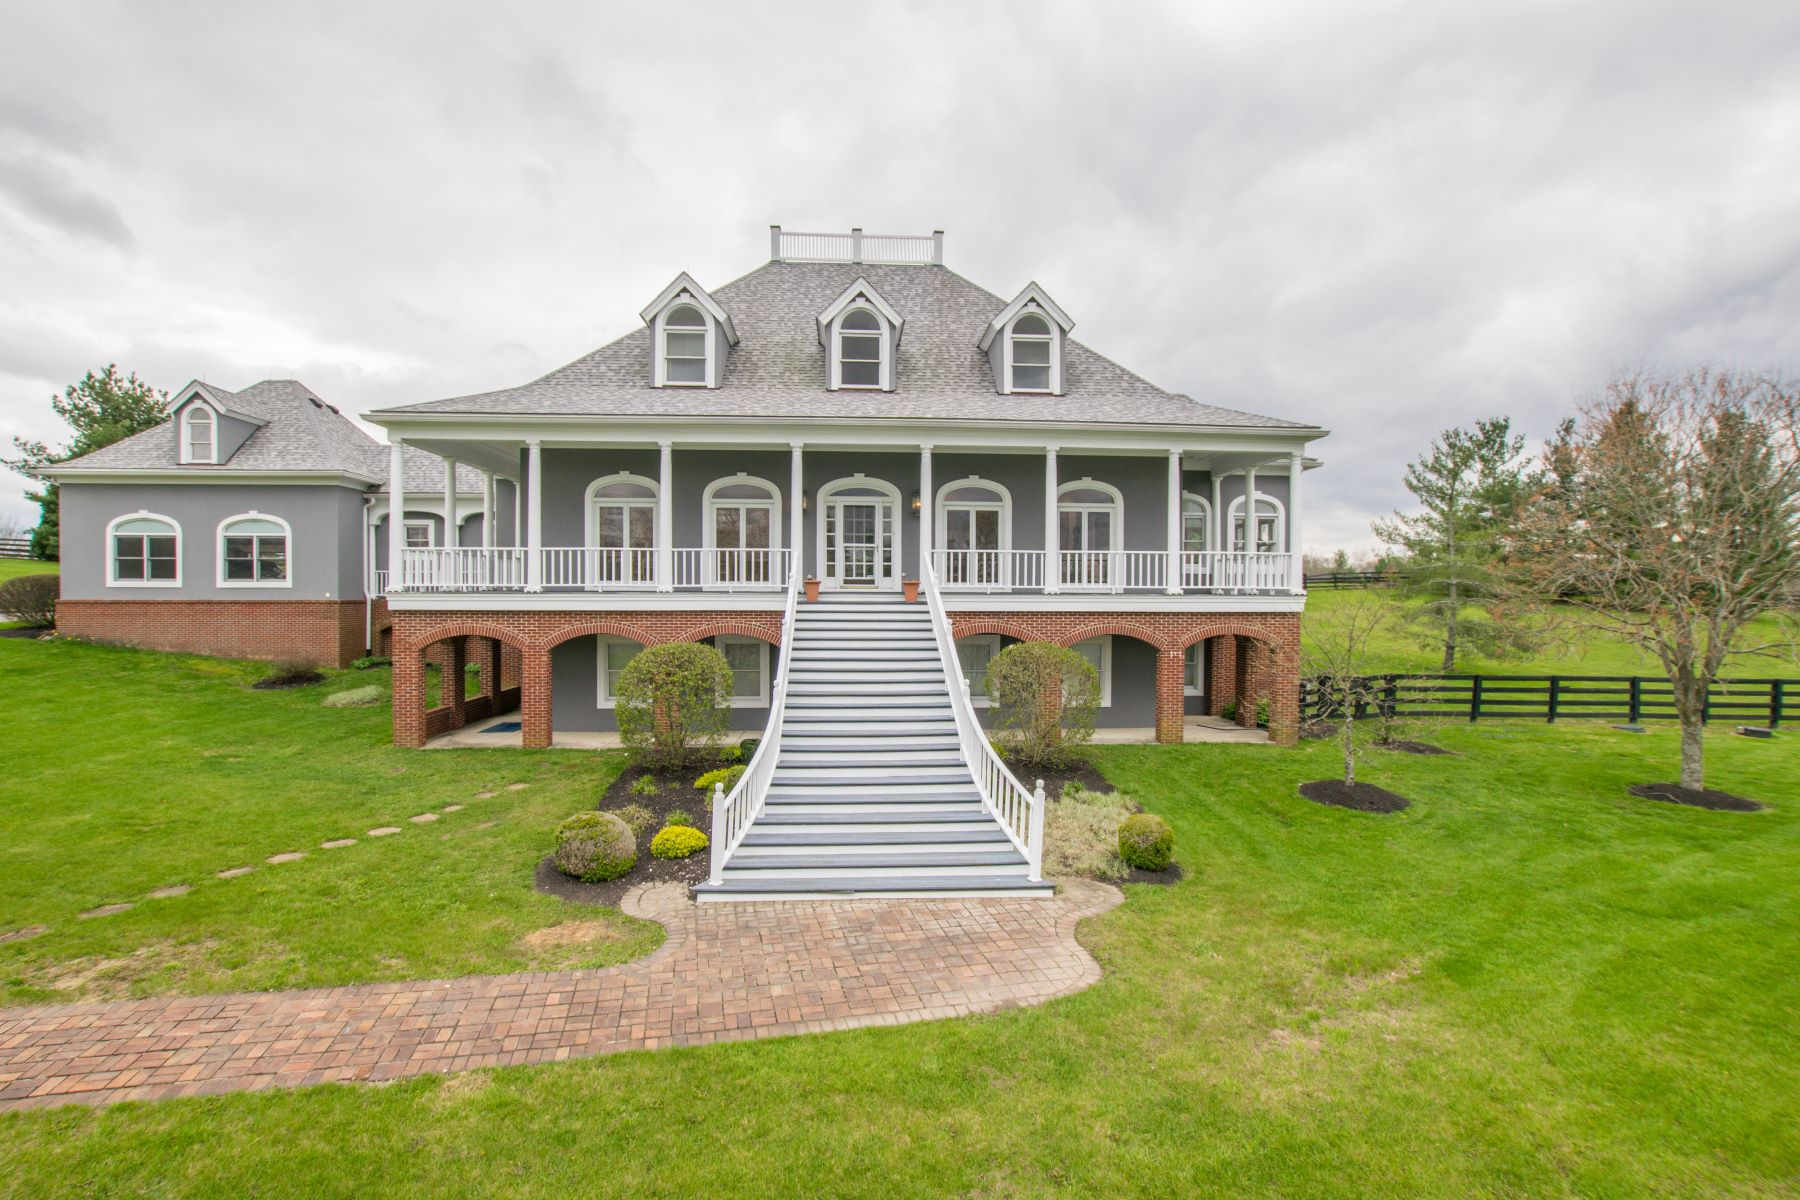 Single Family Home for Sale at 10260 Shelbyville Road Simpsonville, Kentucky 40067 United States